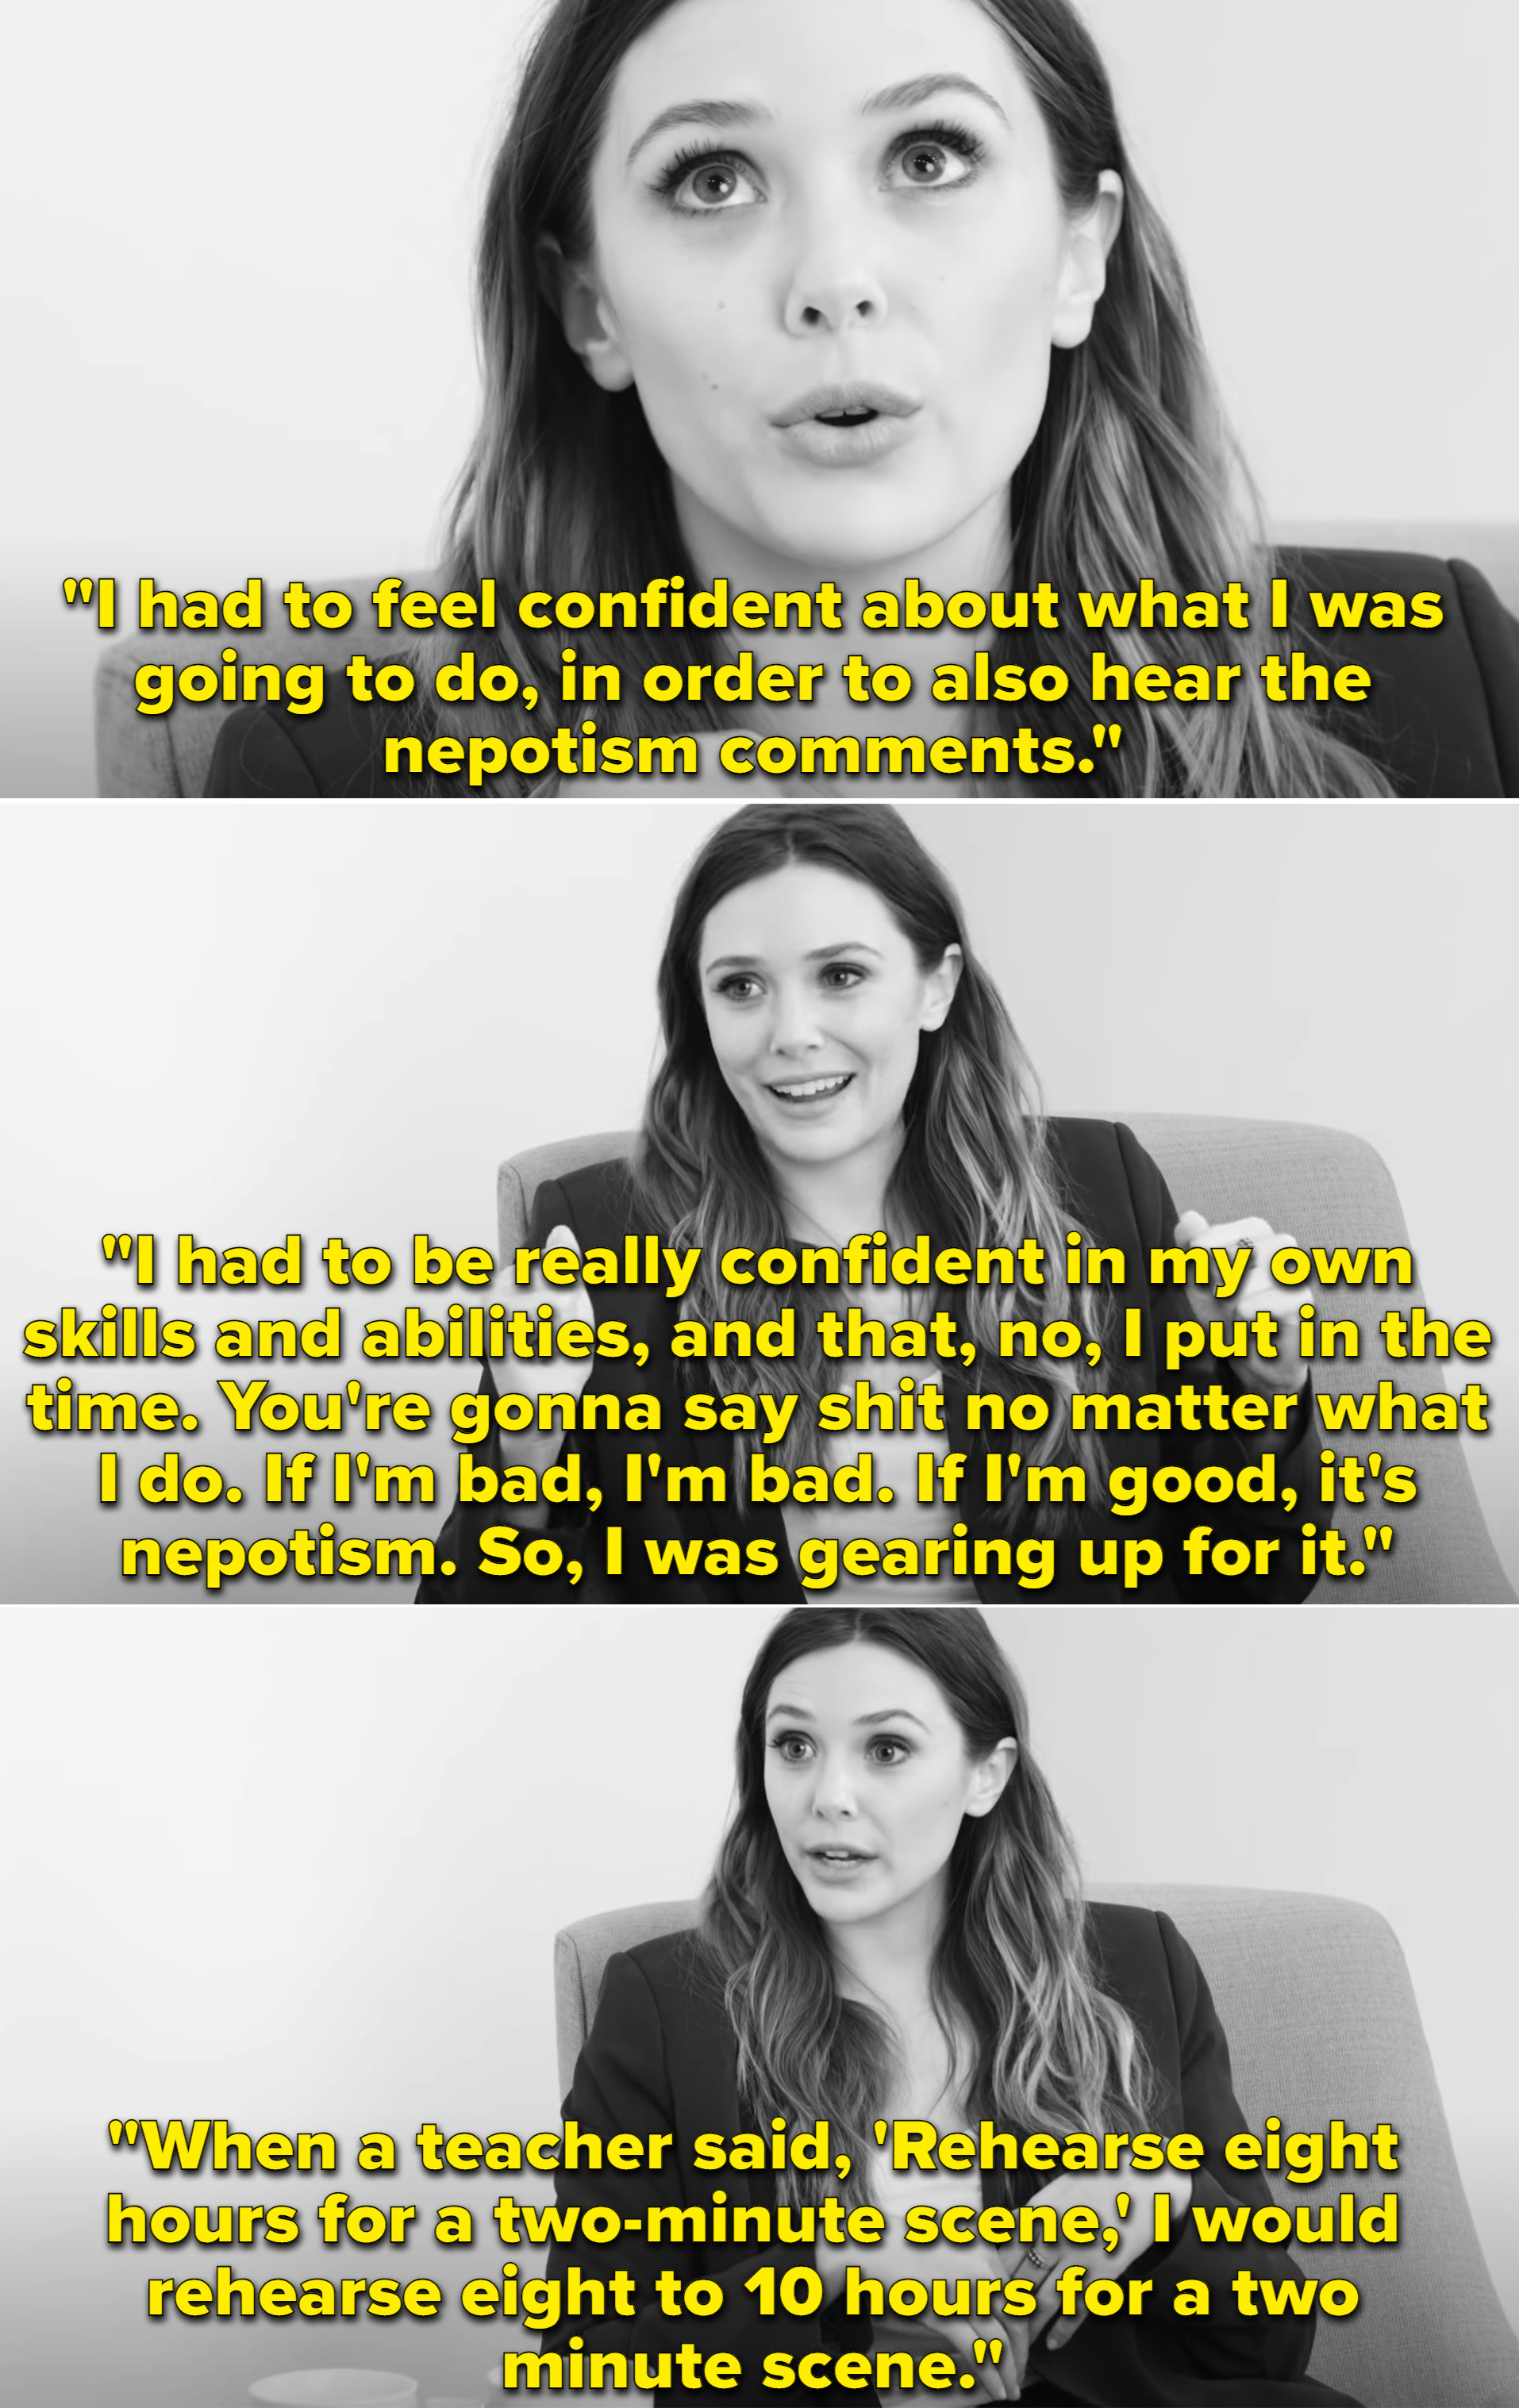 """Elizabeth explaining how she felt like she had to be """"really confident"""" in her skills before becoming a professional actor because everyone was also going to think she only got where she was because of nepotism"""